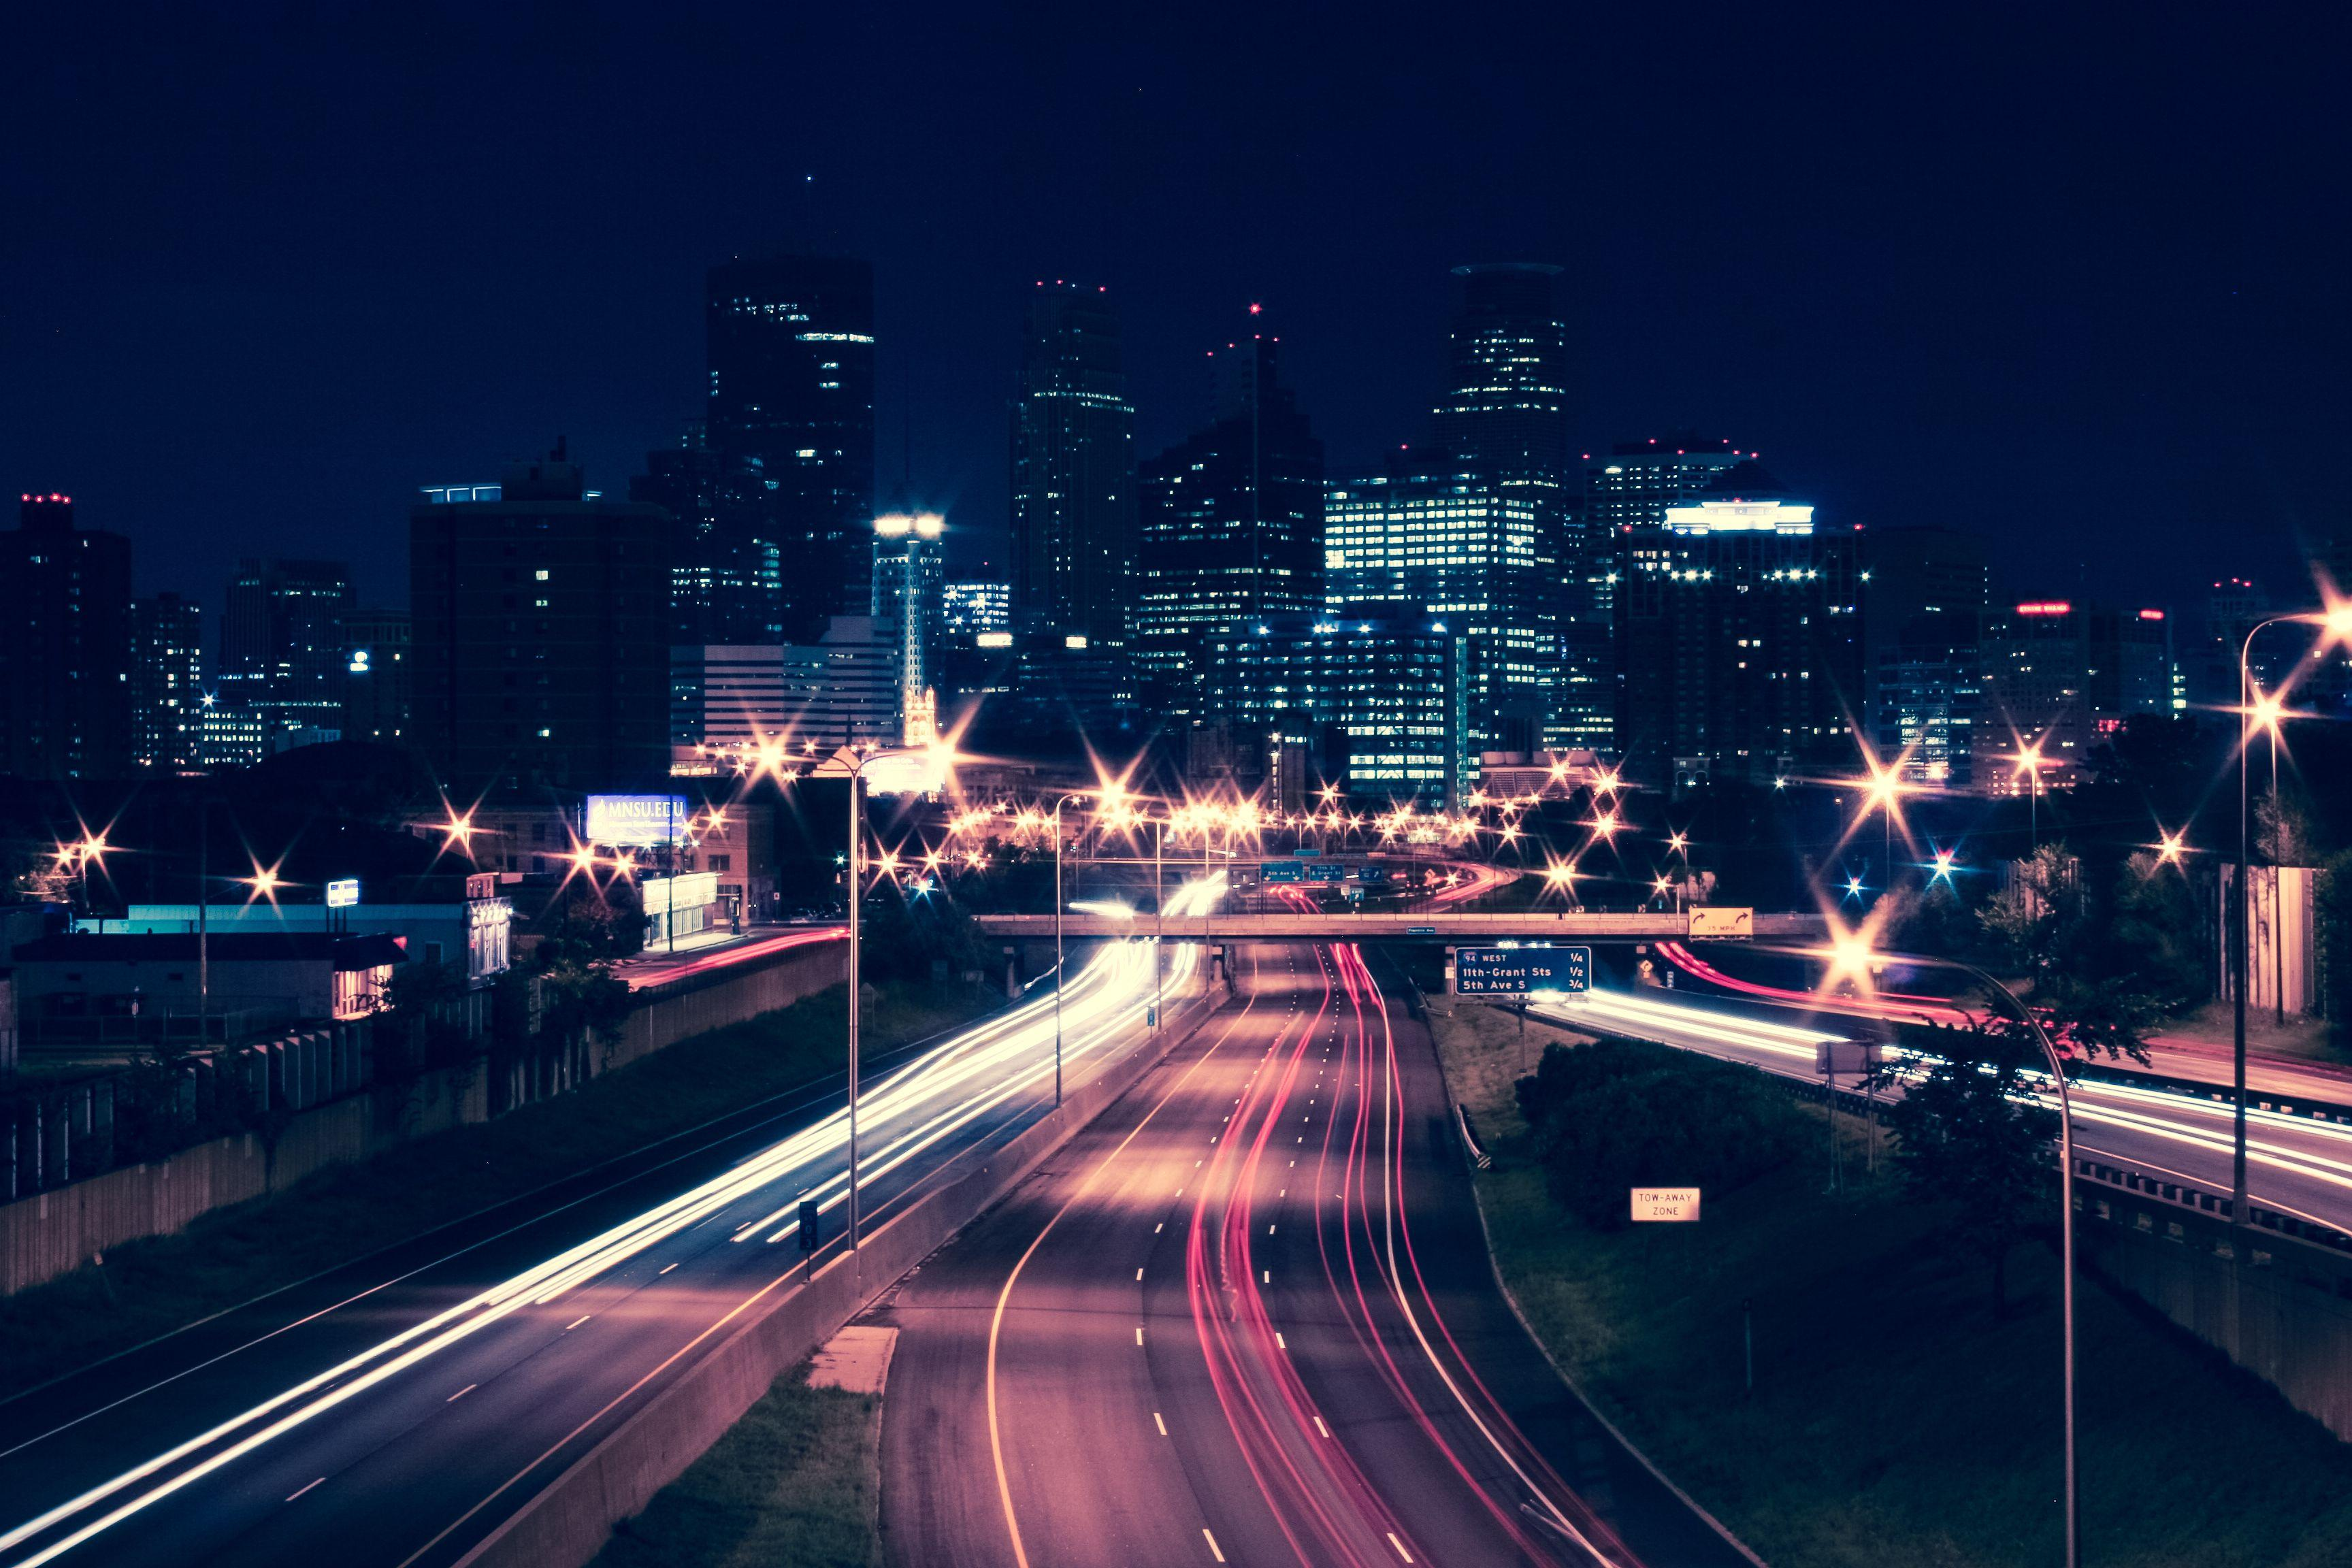 35w North Facing Minneapolis Skyline Reprocess by crapmedia1 on